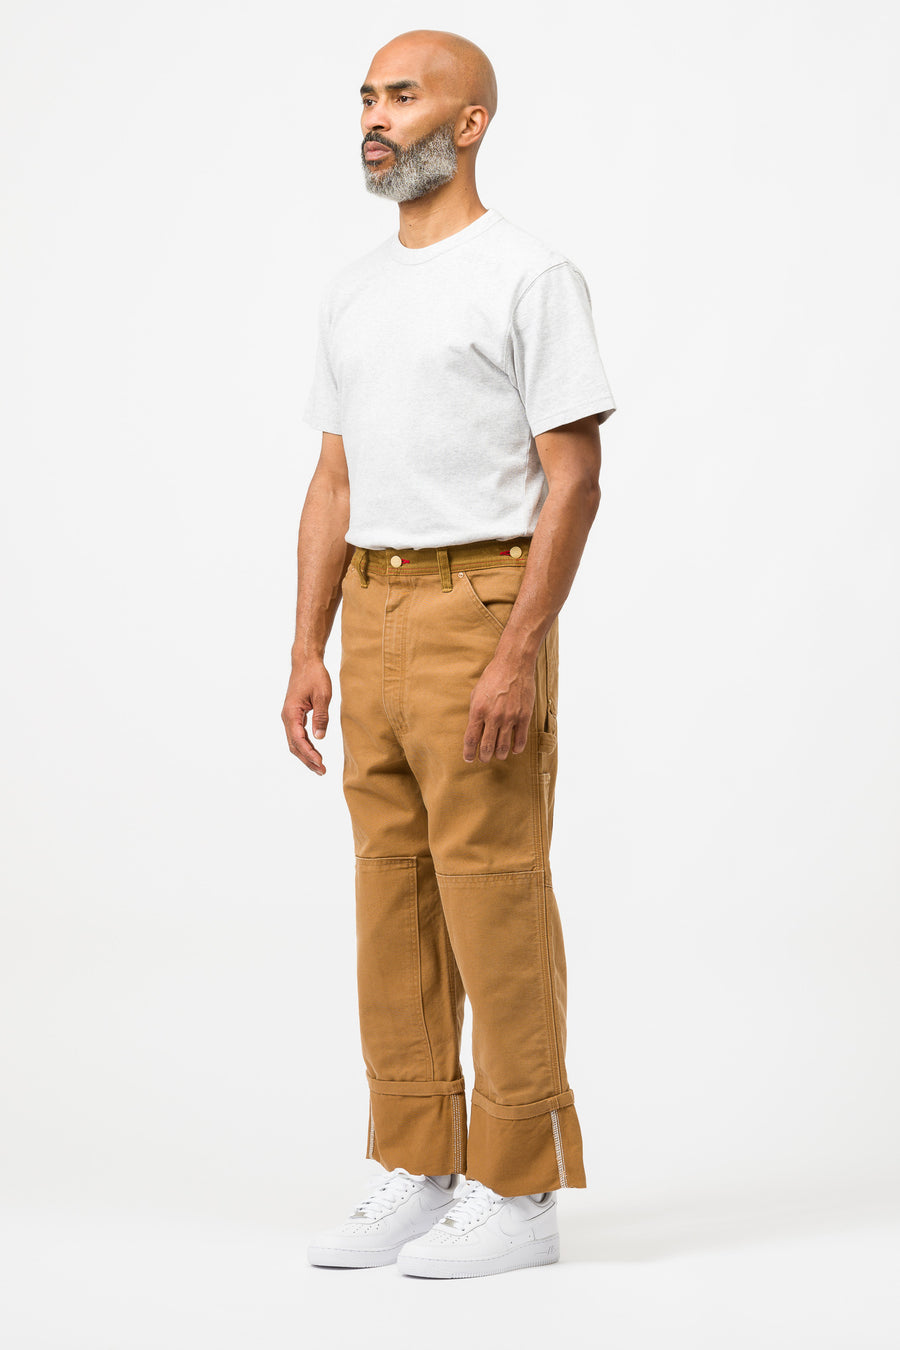 Junya Watanabe Carhartt Pants in Brown - Notre